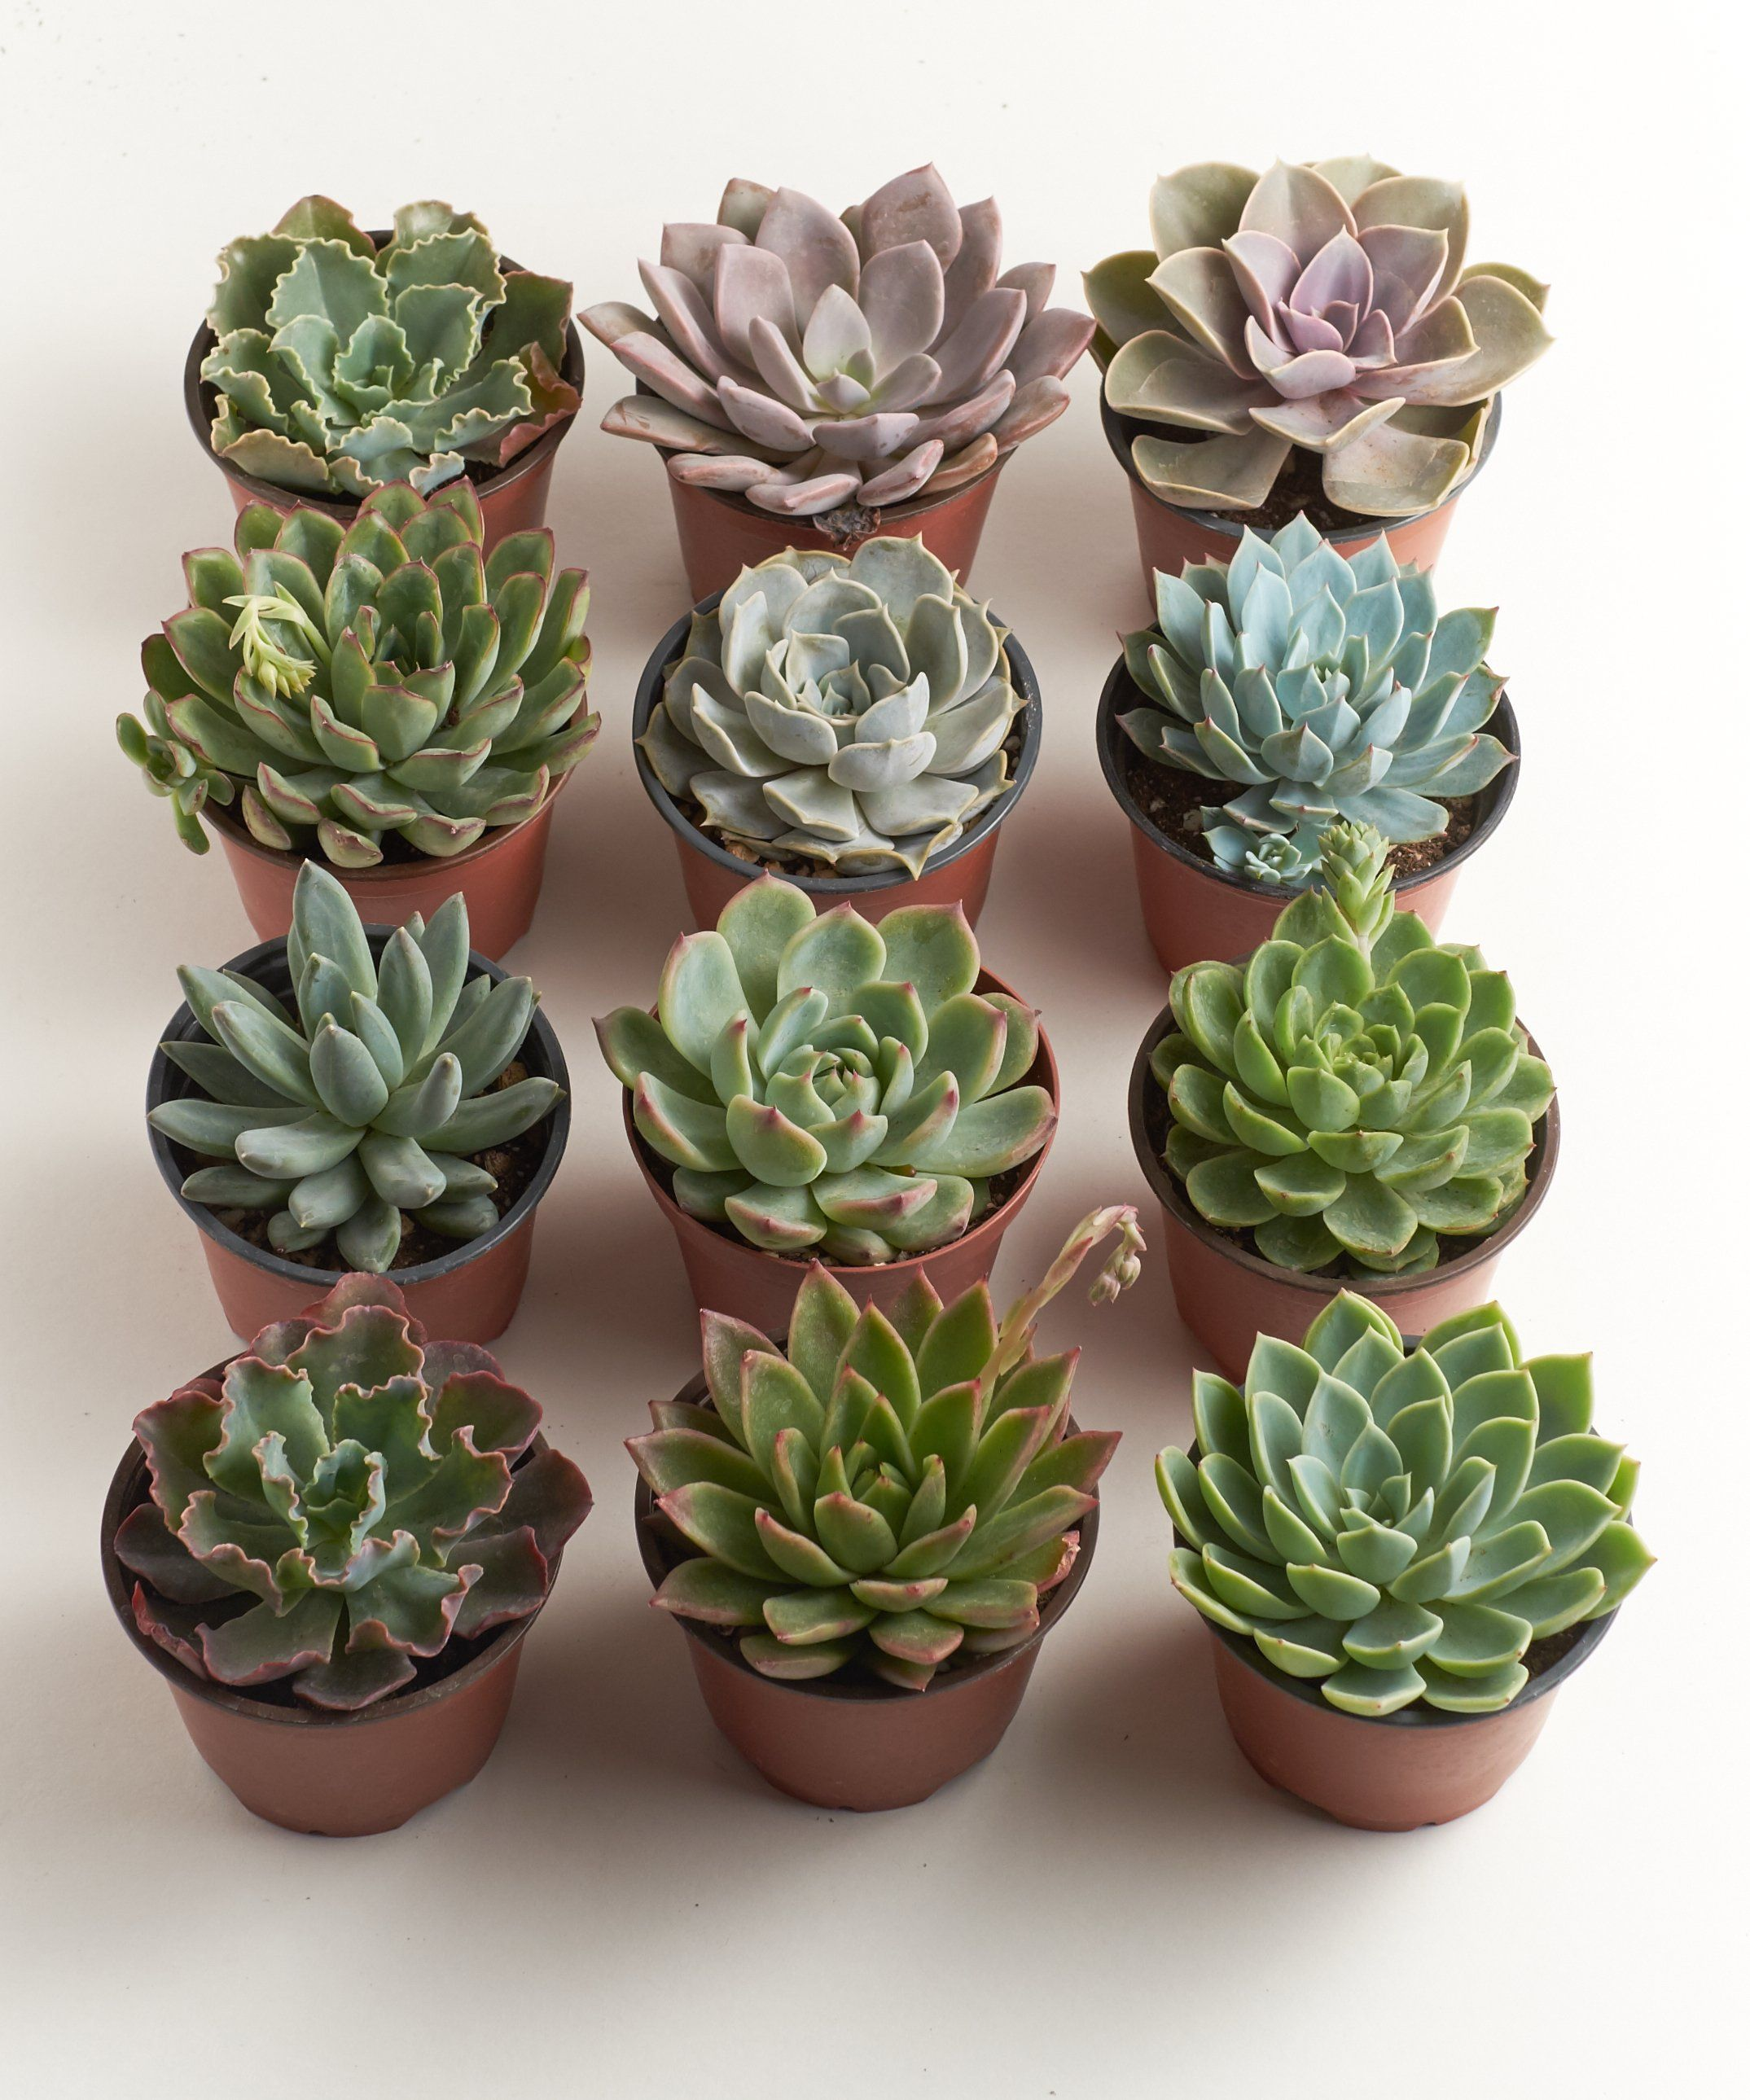 This Collection Includes Stunning 4 Inch Rosette Succulent Assortments That